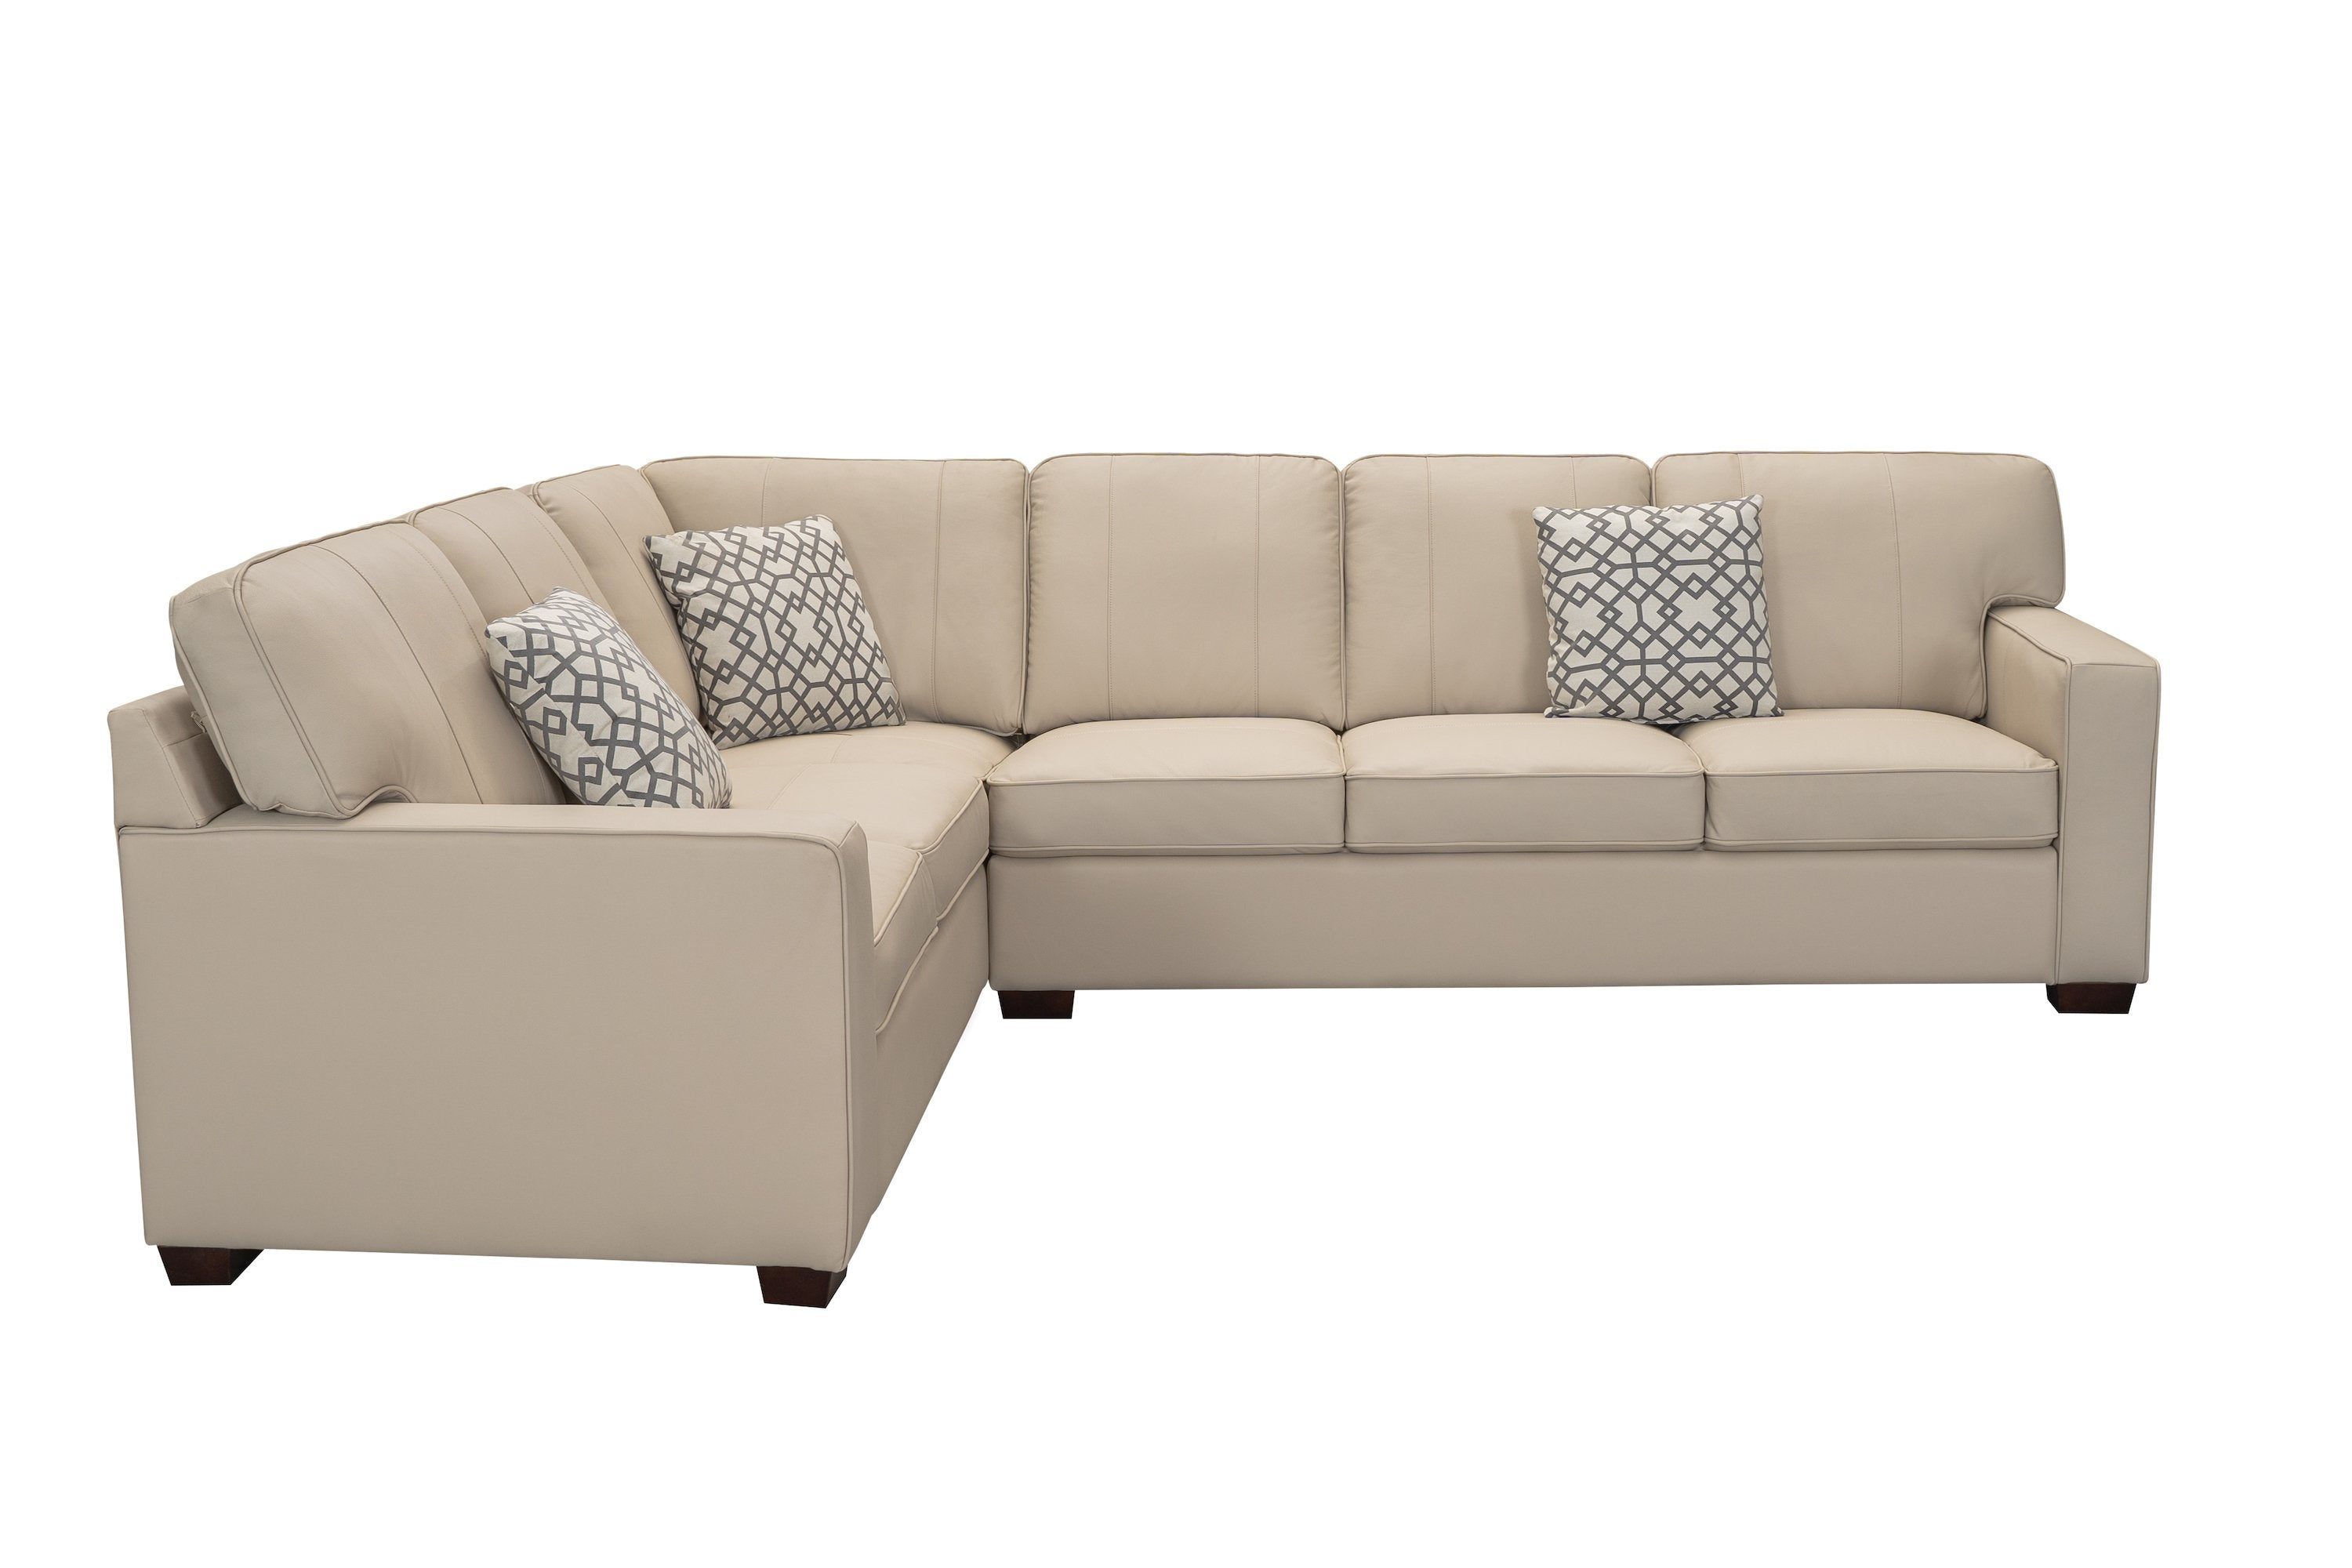 Cora Sectional